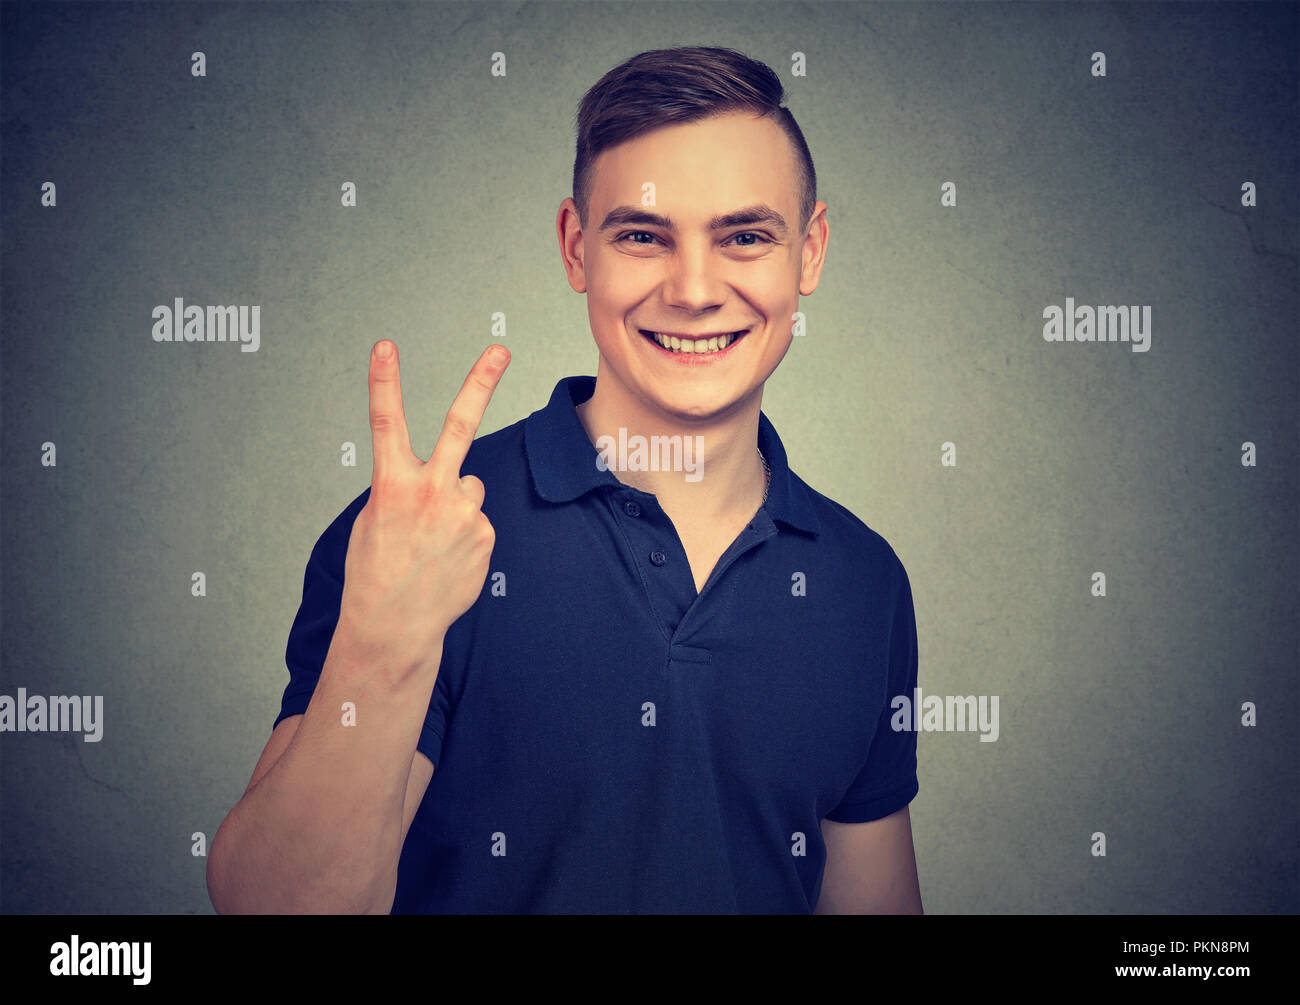 Young casual man smiling brightly and showing v sign while looking at camera on gray background - Stock Image